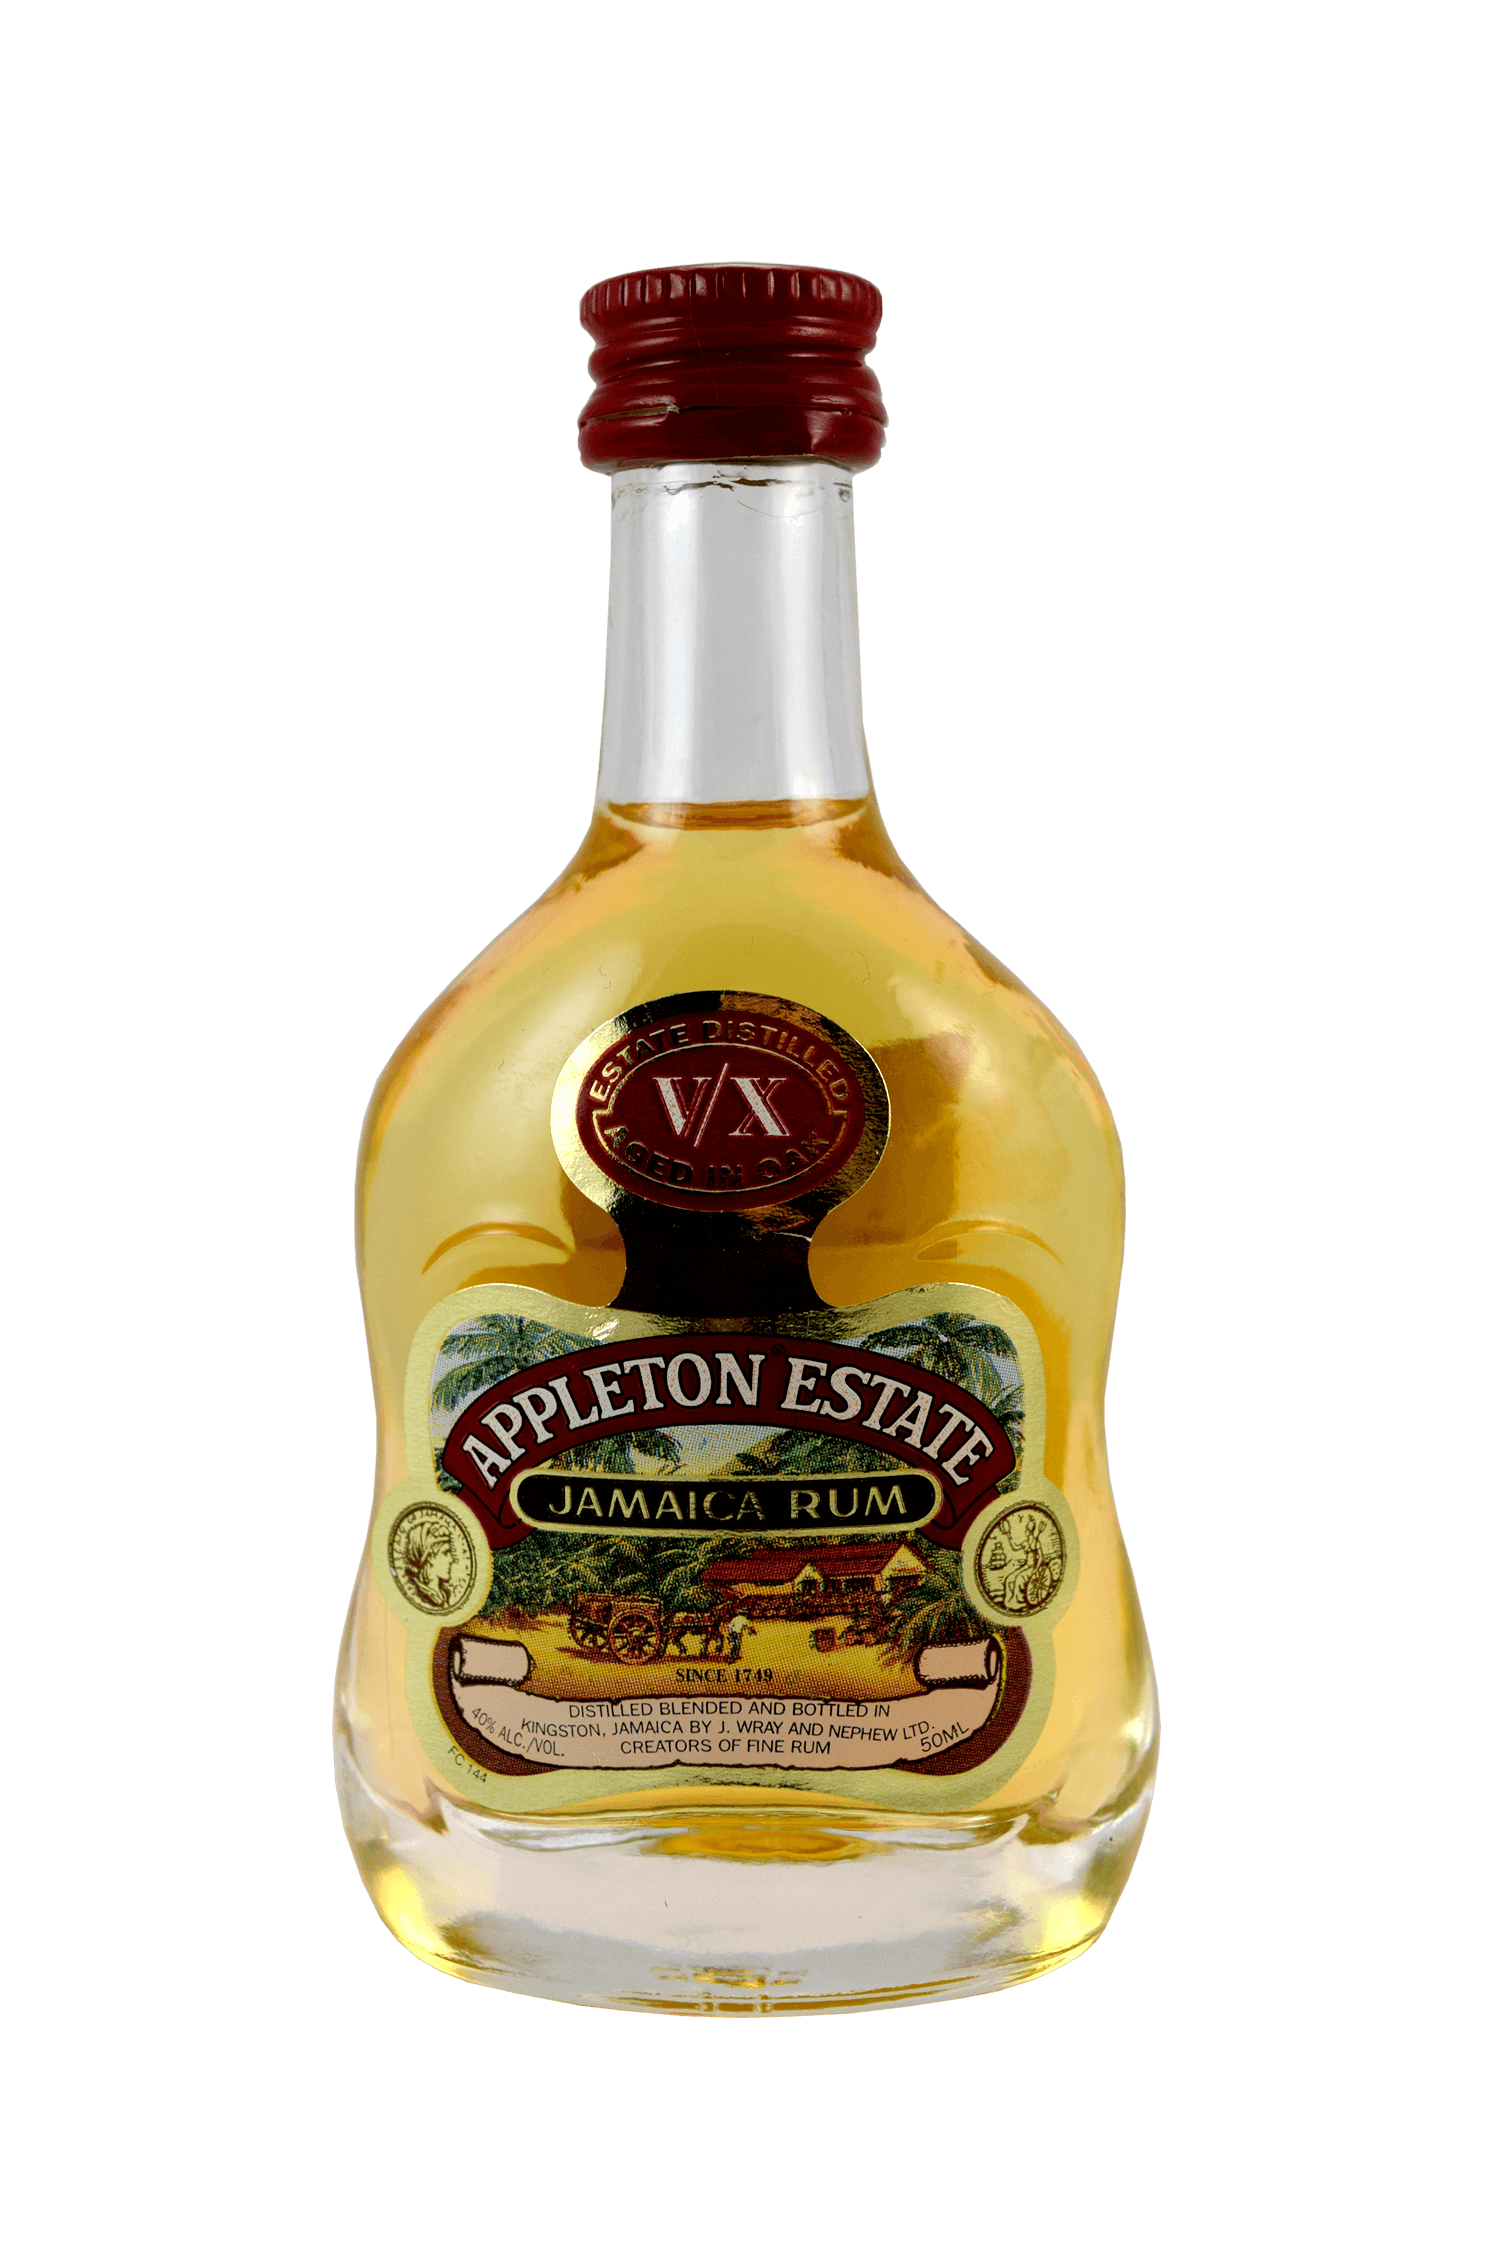 Jamaica Rum Appleton Estate